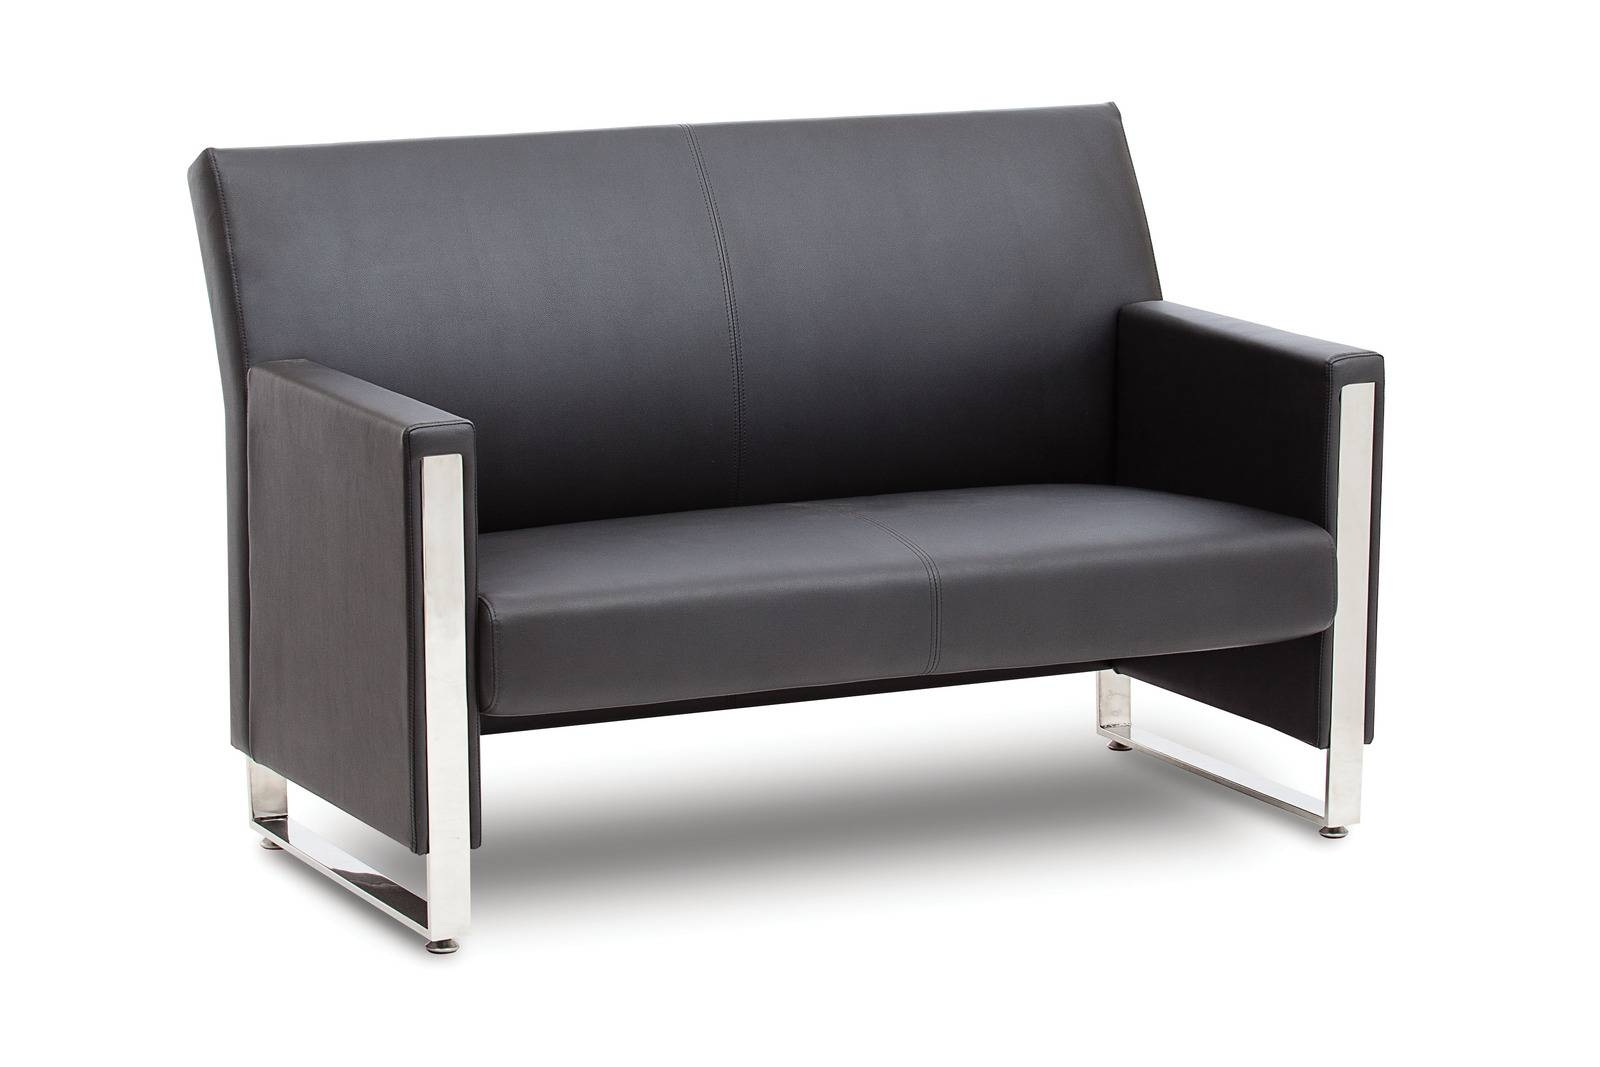 Office Sofa Chair 66 Perfect Inspiration On Office Sofa Chair Regarding Office Sofas And Chairs (View 10 of 15)